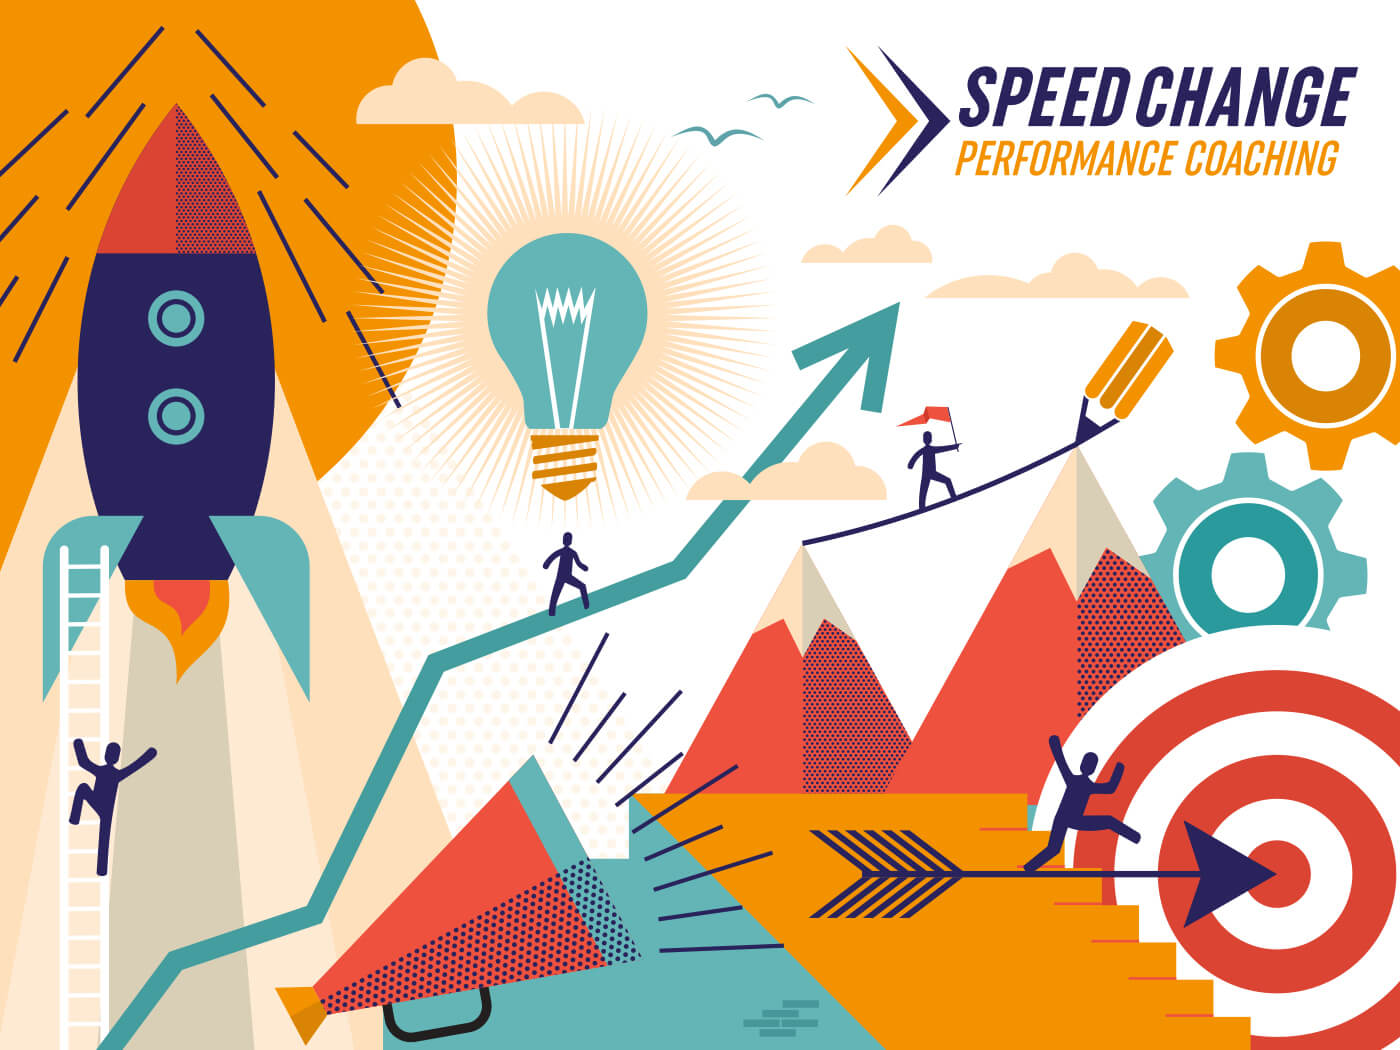 SPEEDCHANGE PERFORMANCE COACHING – HOW TO ACHIEVE OUR FULL POTENTIAL?